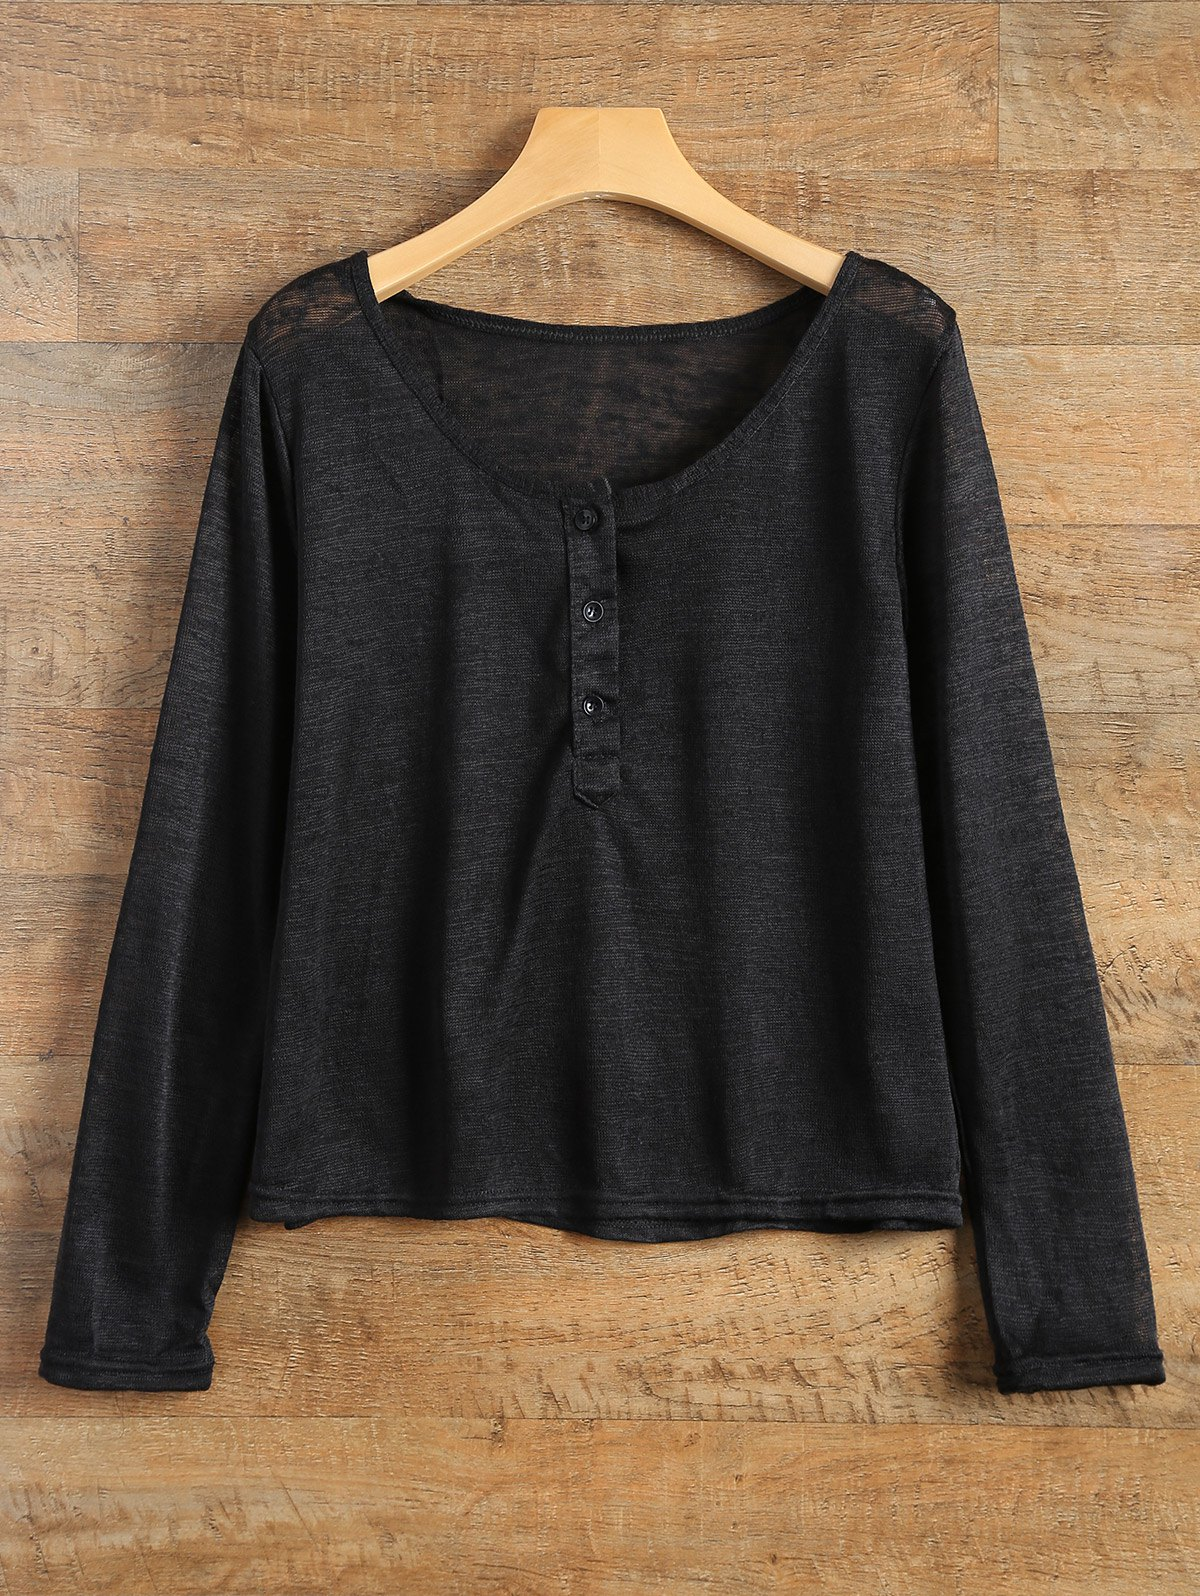 Pullover Long Sleeve Scoop Neck Solid Color Blouse For Women - BLACK XL